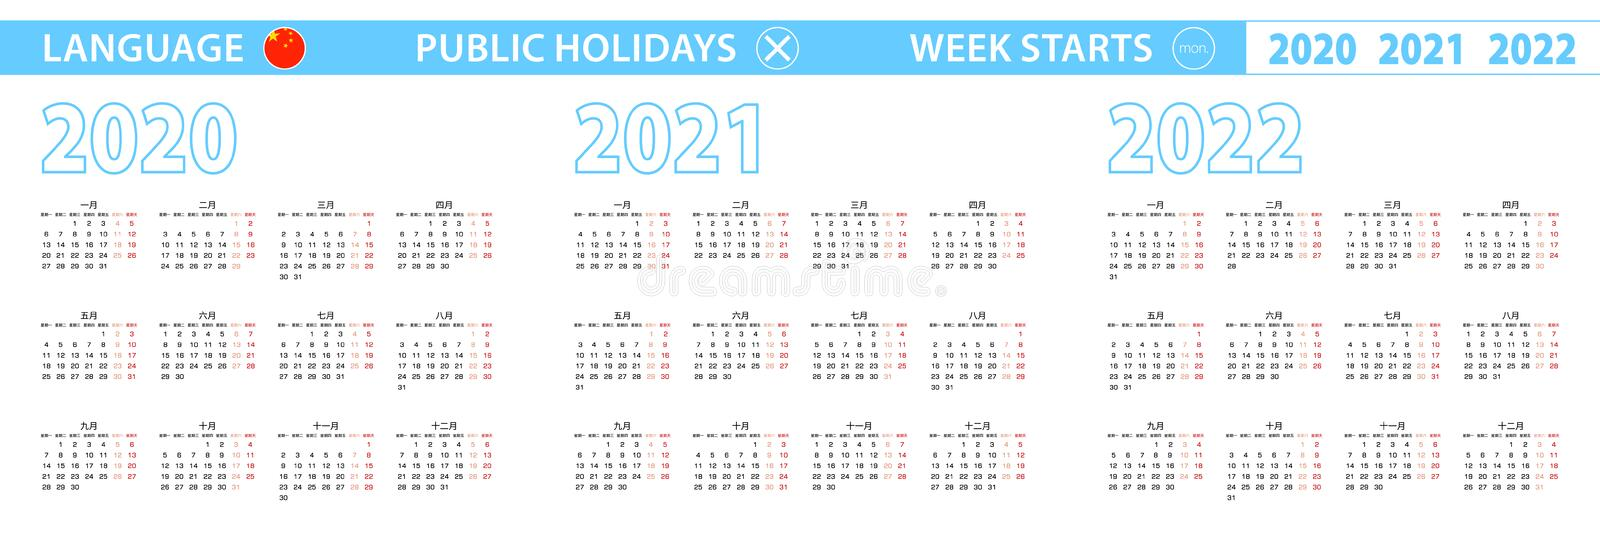 Chinese Holiday Calendar 2022.Simple Calendar Template In Chinese For 2020 2021 2022 Years Week Starts From Monday Stock Vector Illustration Of Month Simple 190940522